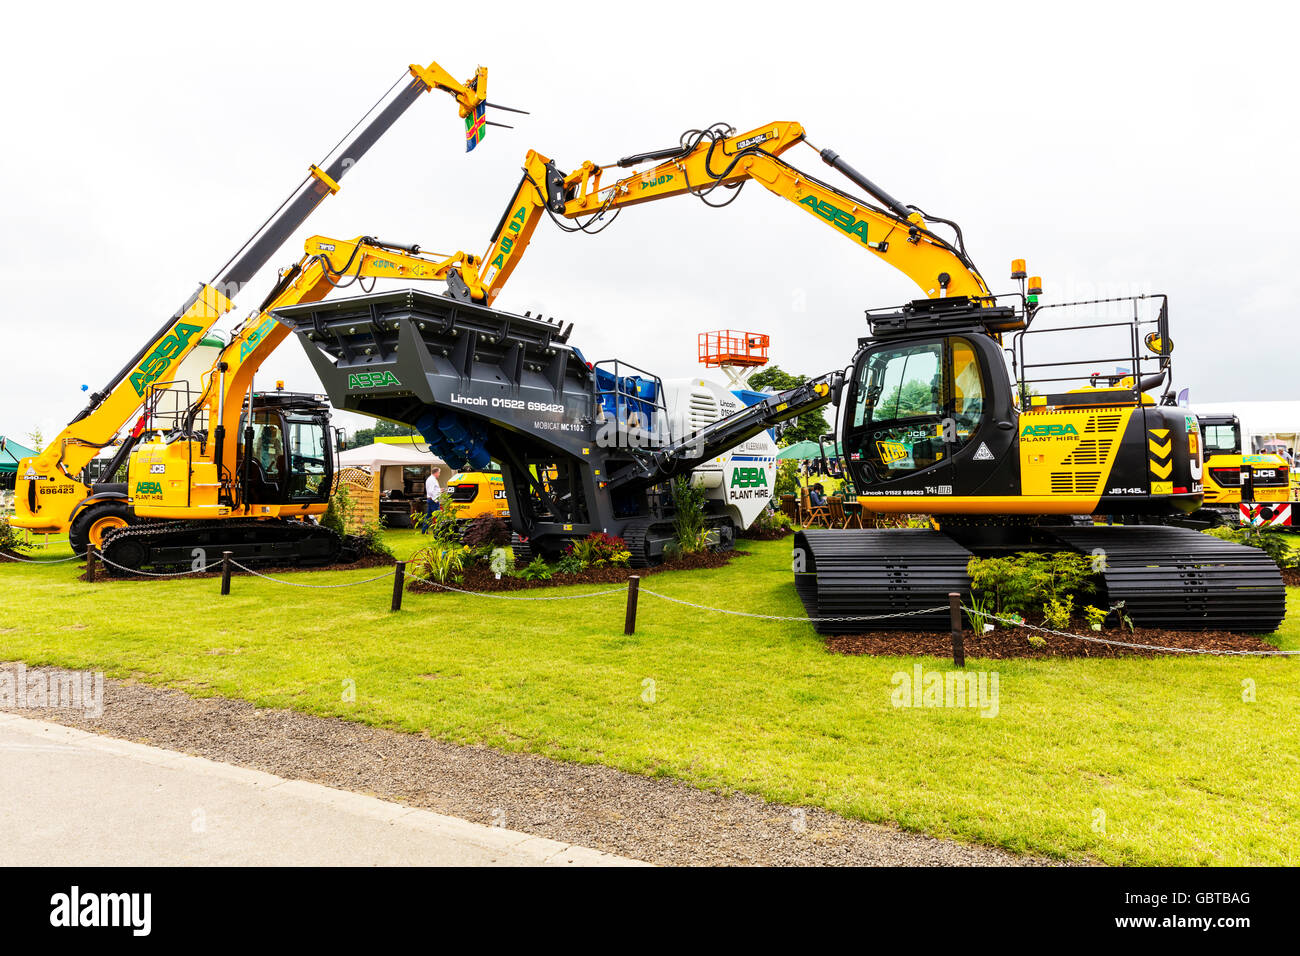 Telescopic Forklift Long Reach Excavator Abba plant hire machinery UK England GB Stock Photo